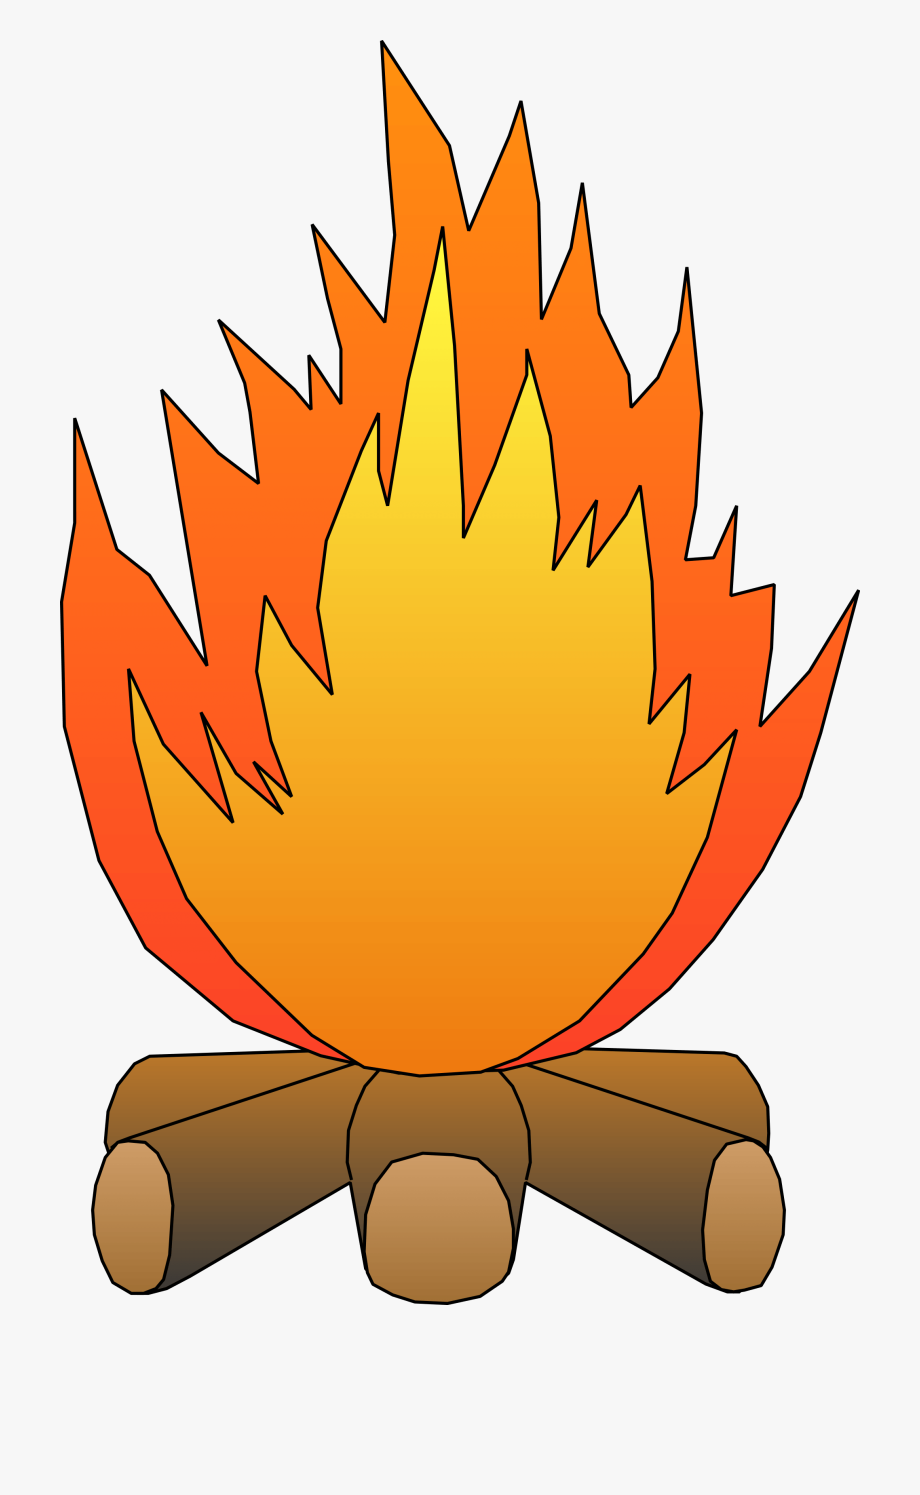 Fire Png Image.